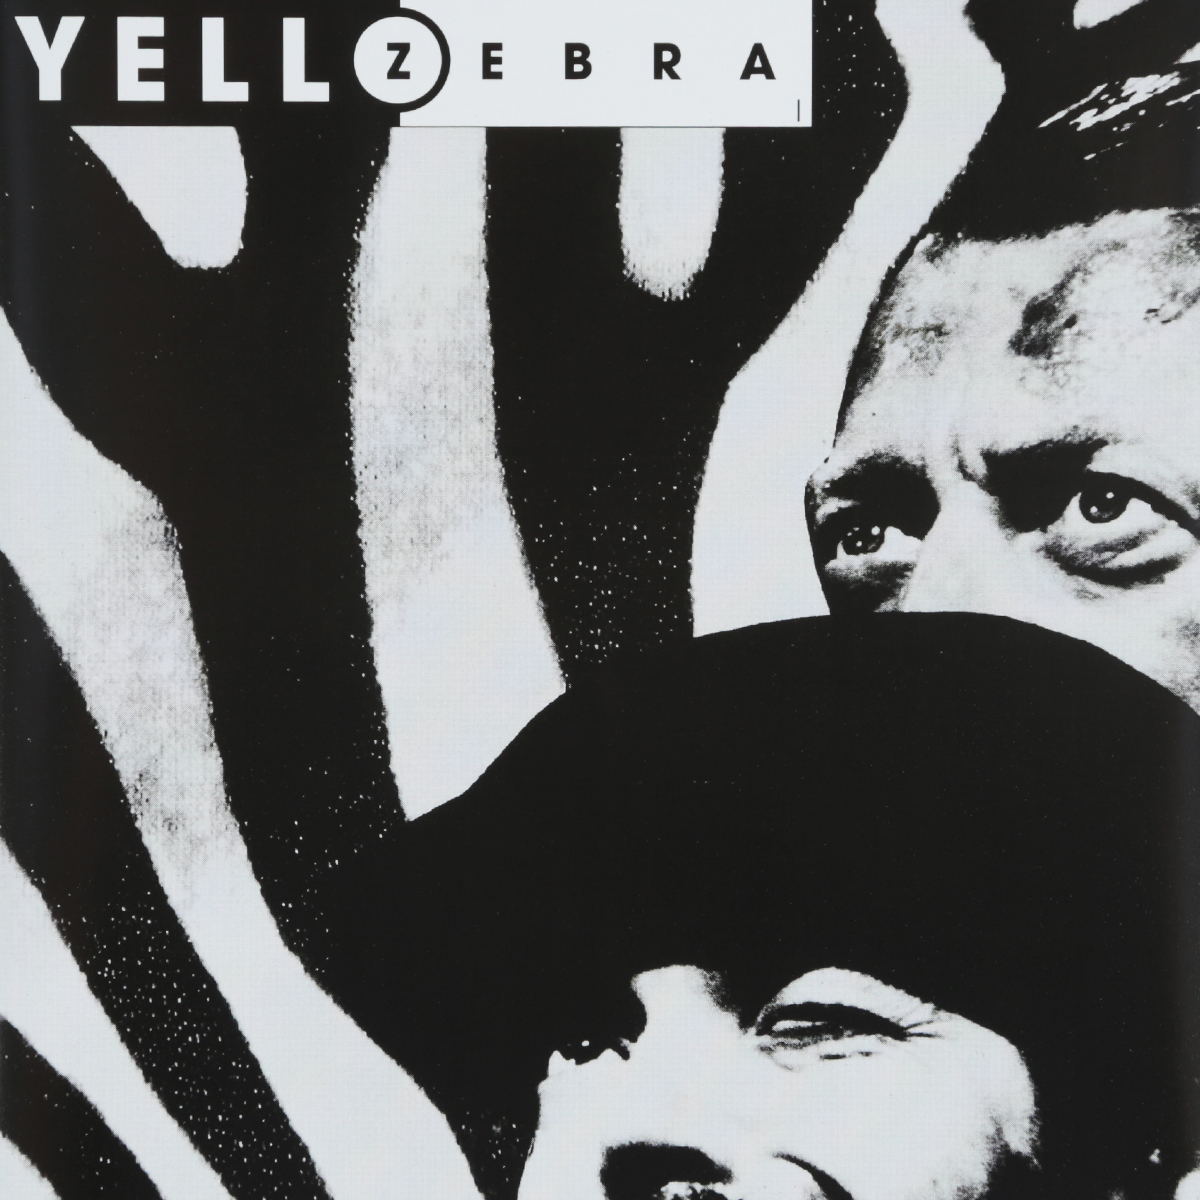 Yello Yello. Zebra термостат для ванны kludi чёрный 351018638